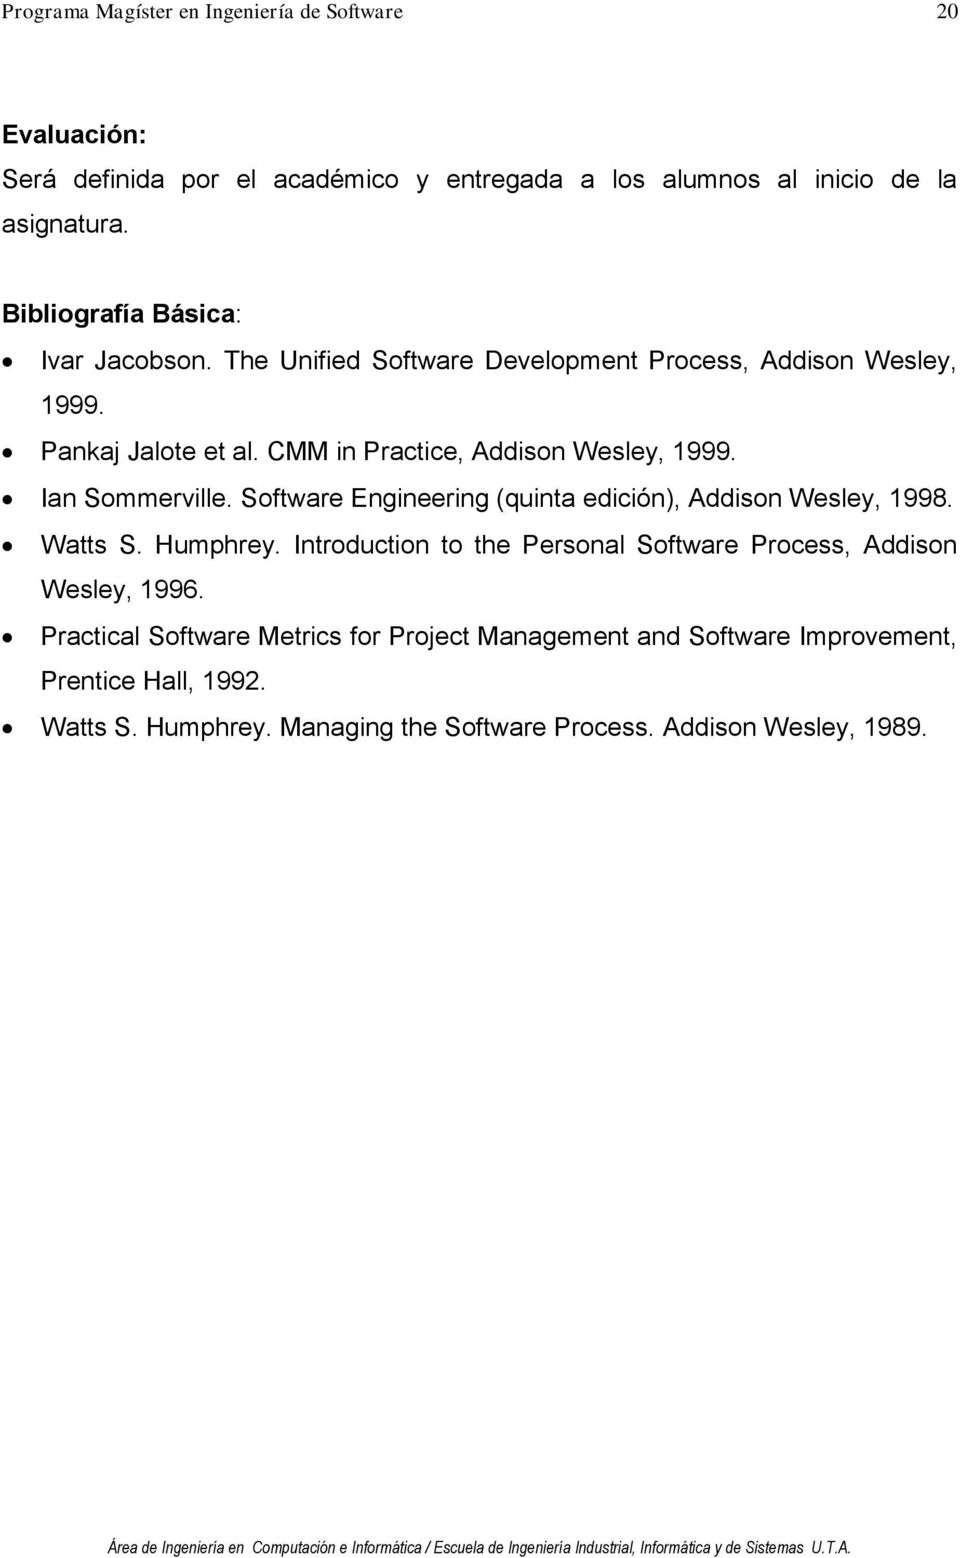 Software Engineering (quinta edición), Addison Wesley, 1998. Watts S. Humphrey. Introduction to the Personal Software Process, Addison Wesley, 1996.